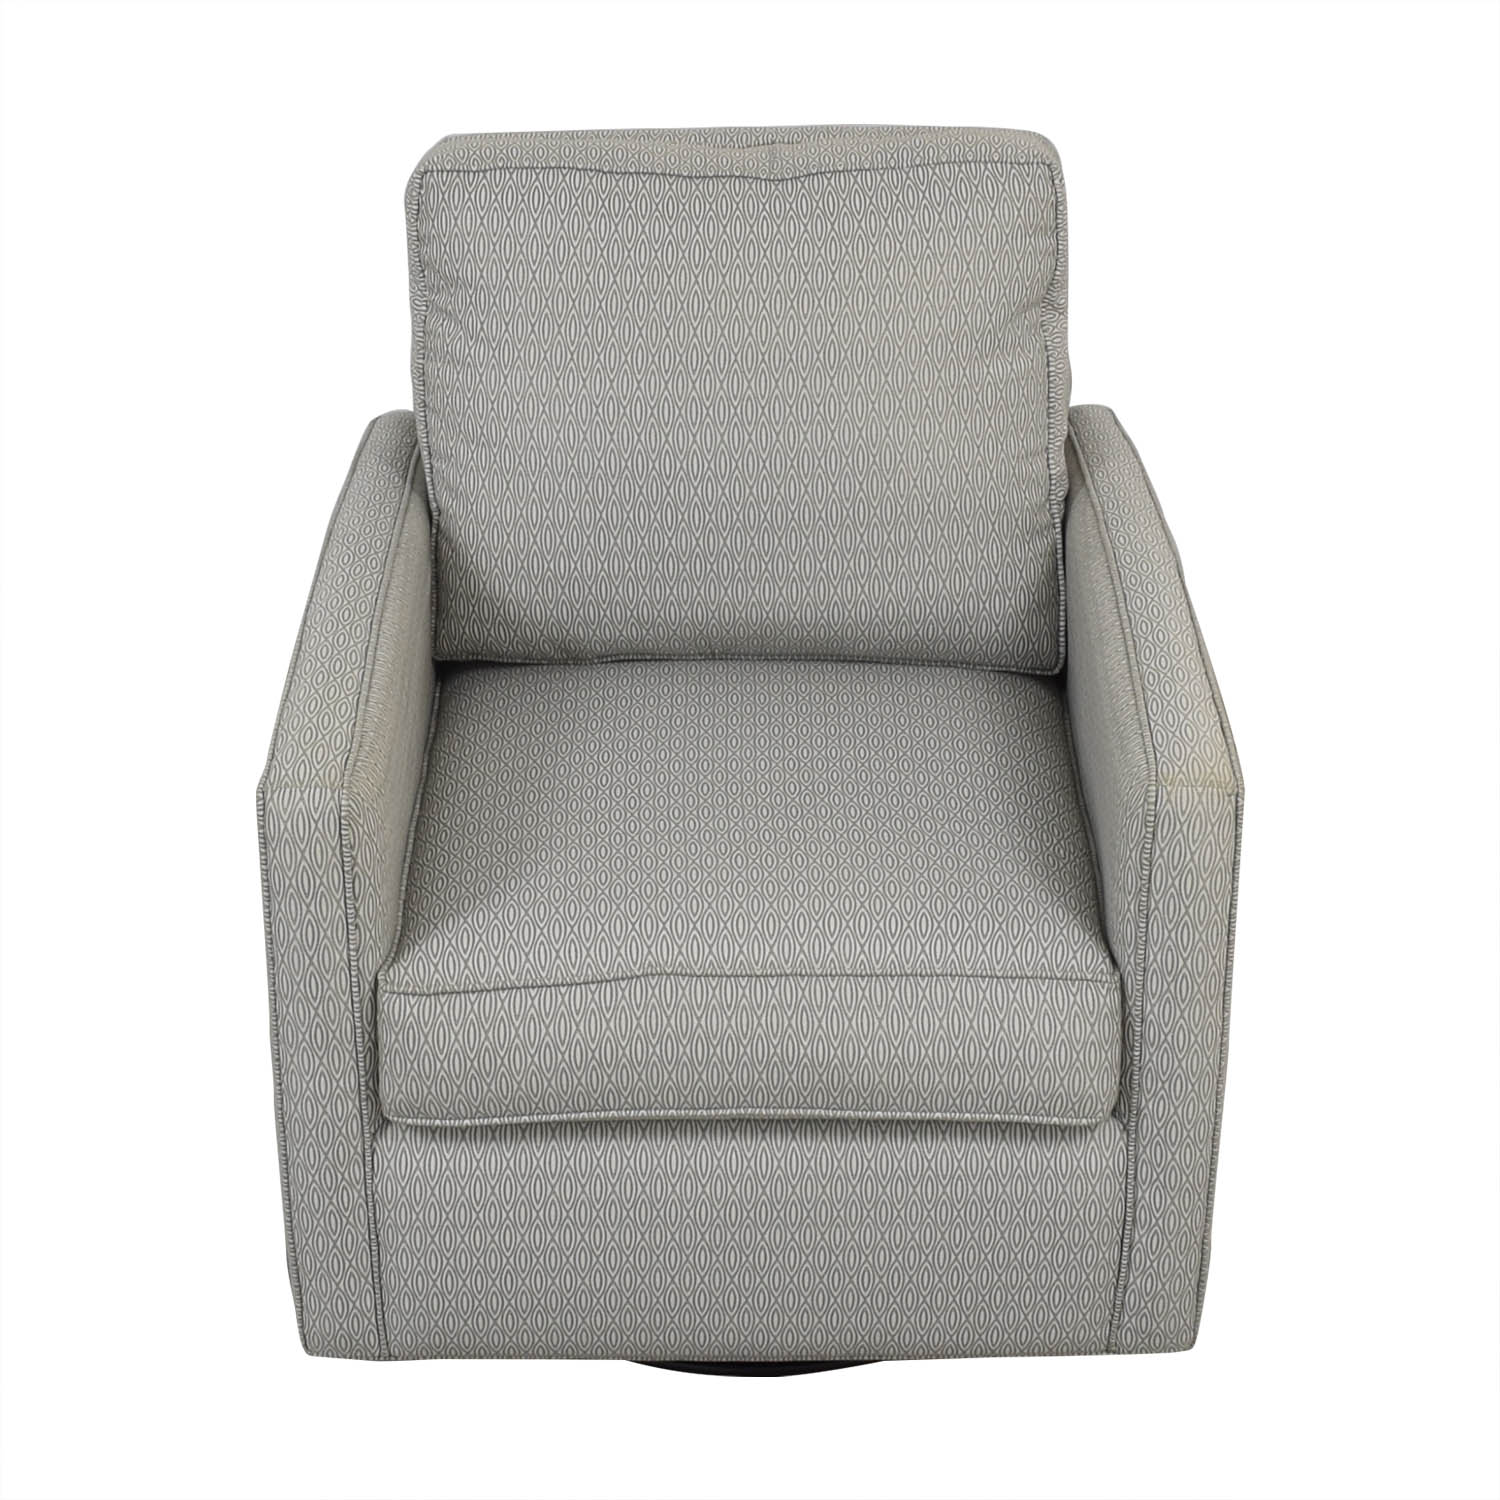 shop Younger Furniture Younger Furniture Lincoln Swivel Glider Chair online